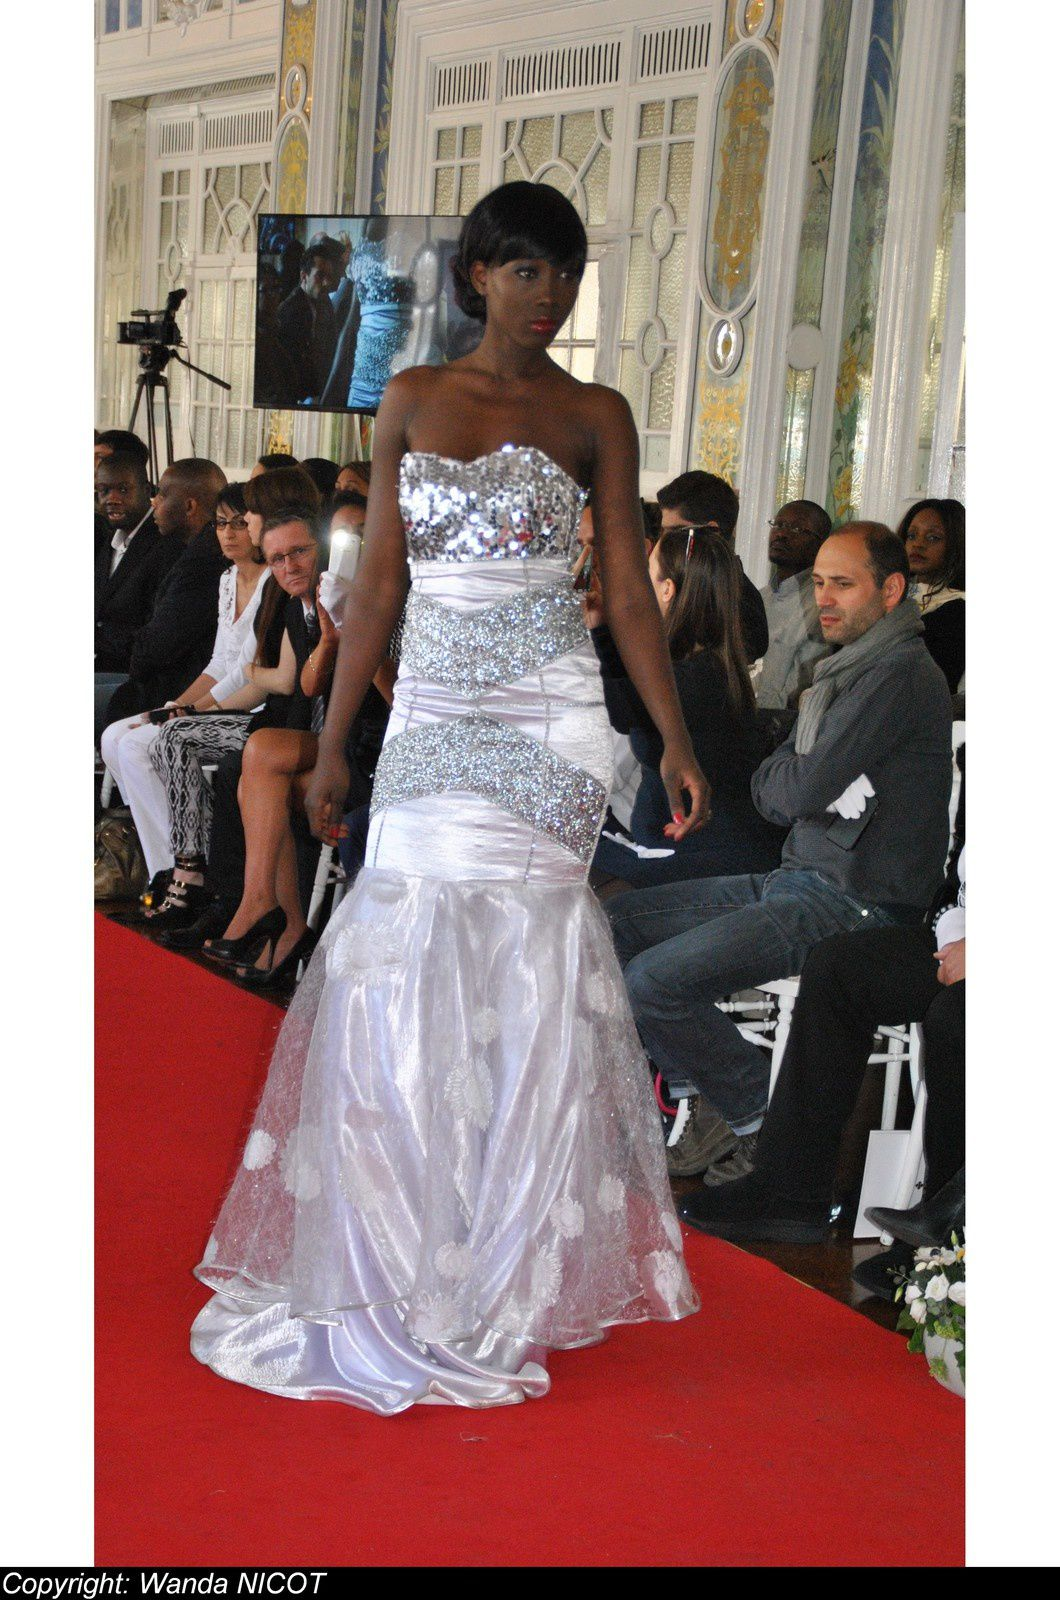 N° 5 DEFILE DE LA FASHION NIGHT COUTURE  A PARIS